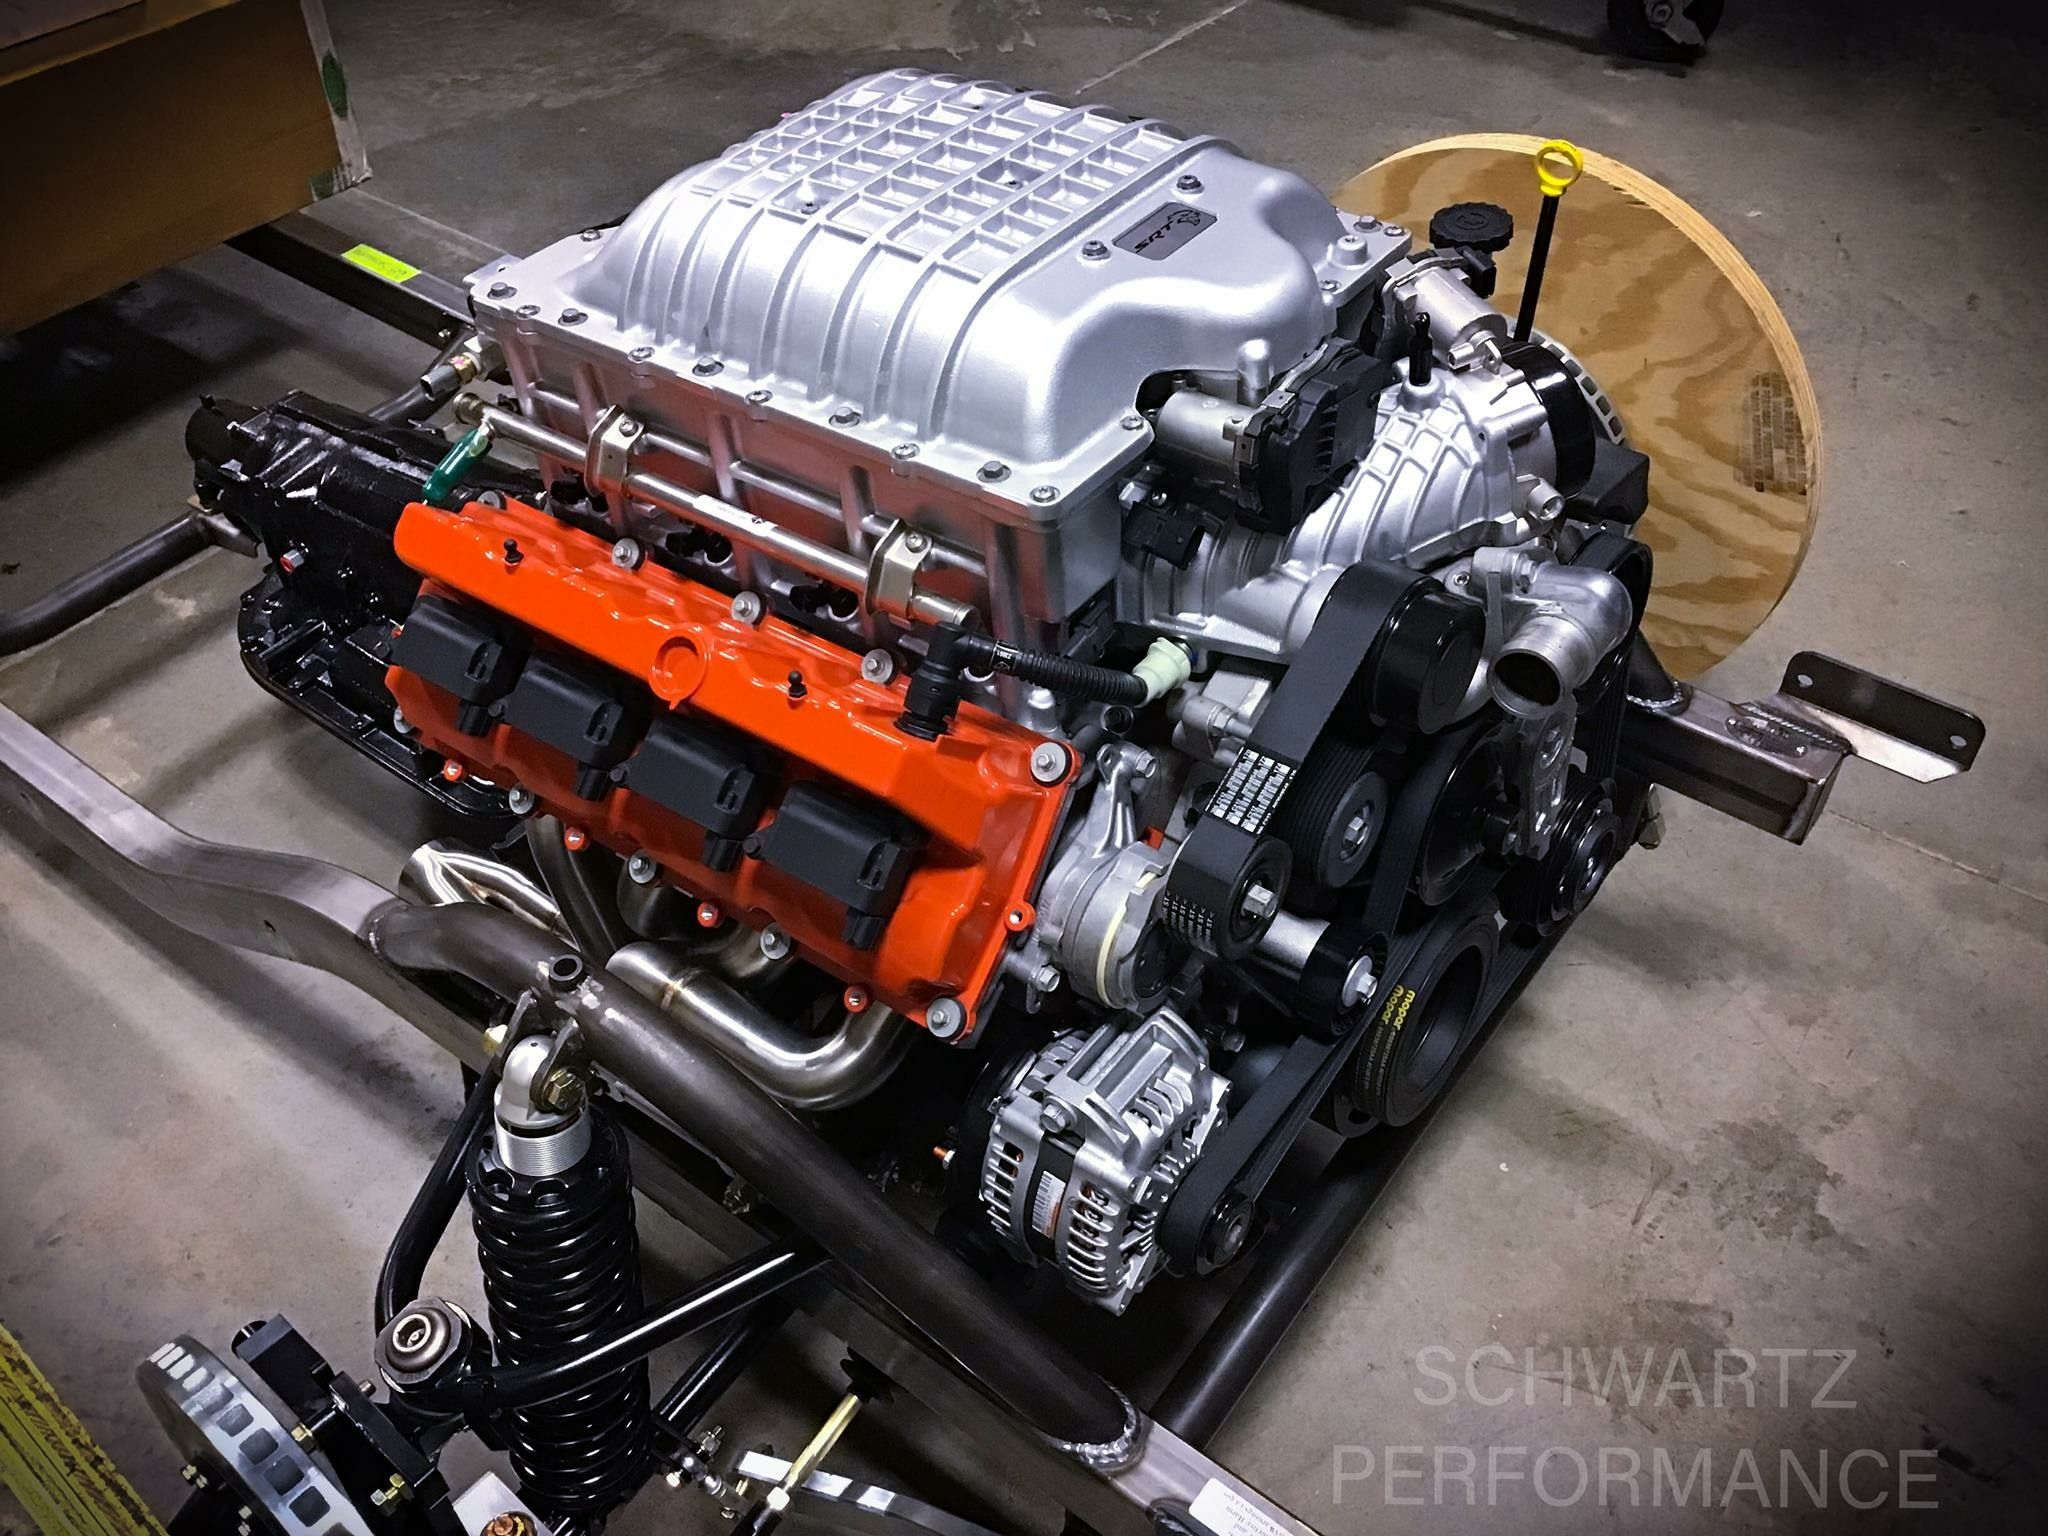 Hellcat Crate Engine Schwartz Performance Performance Engines